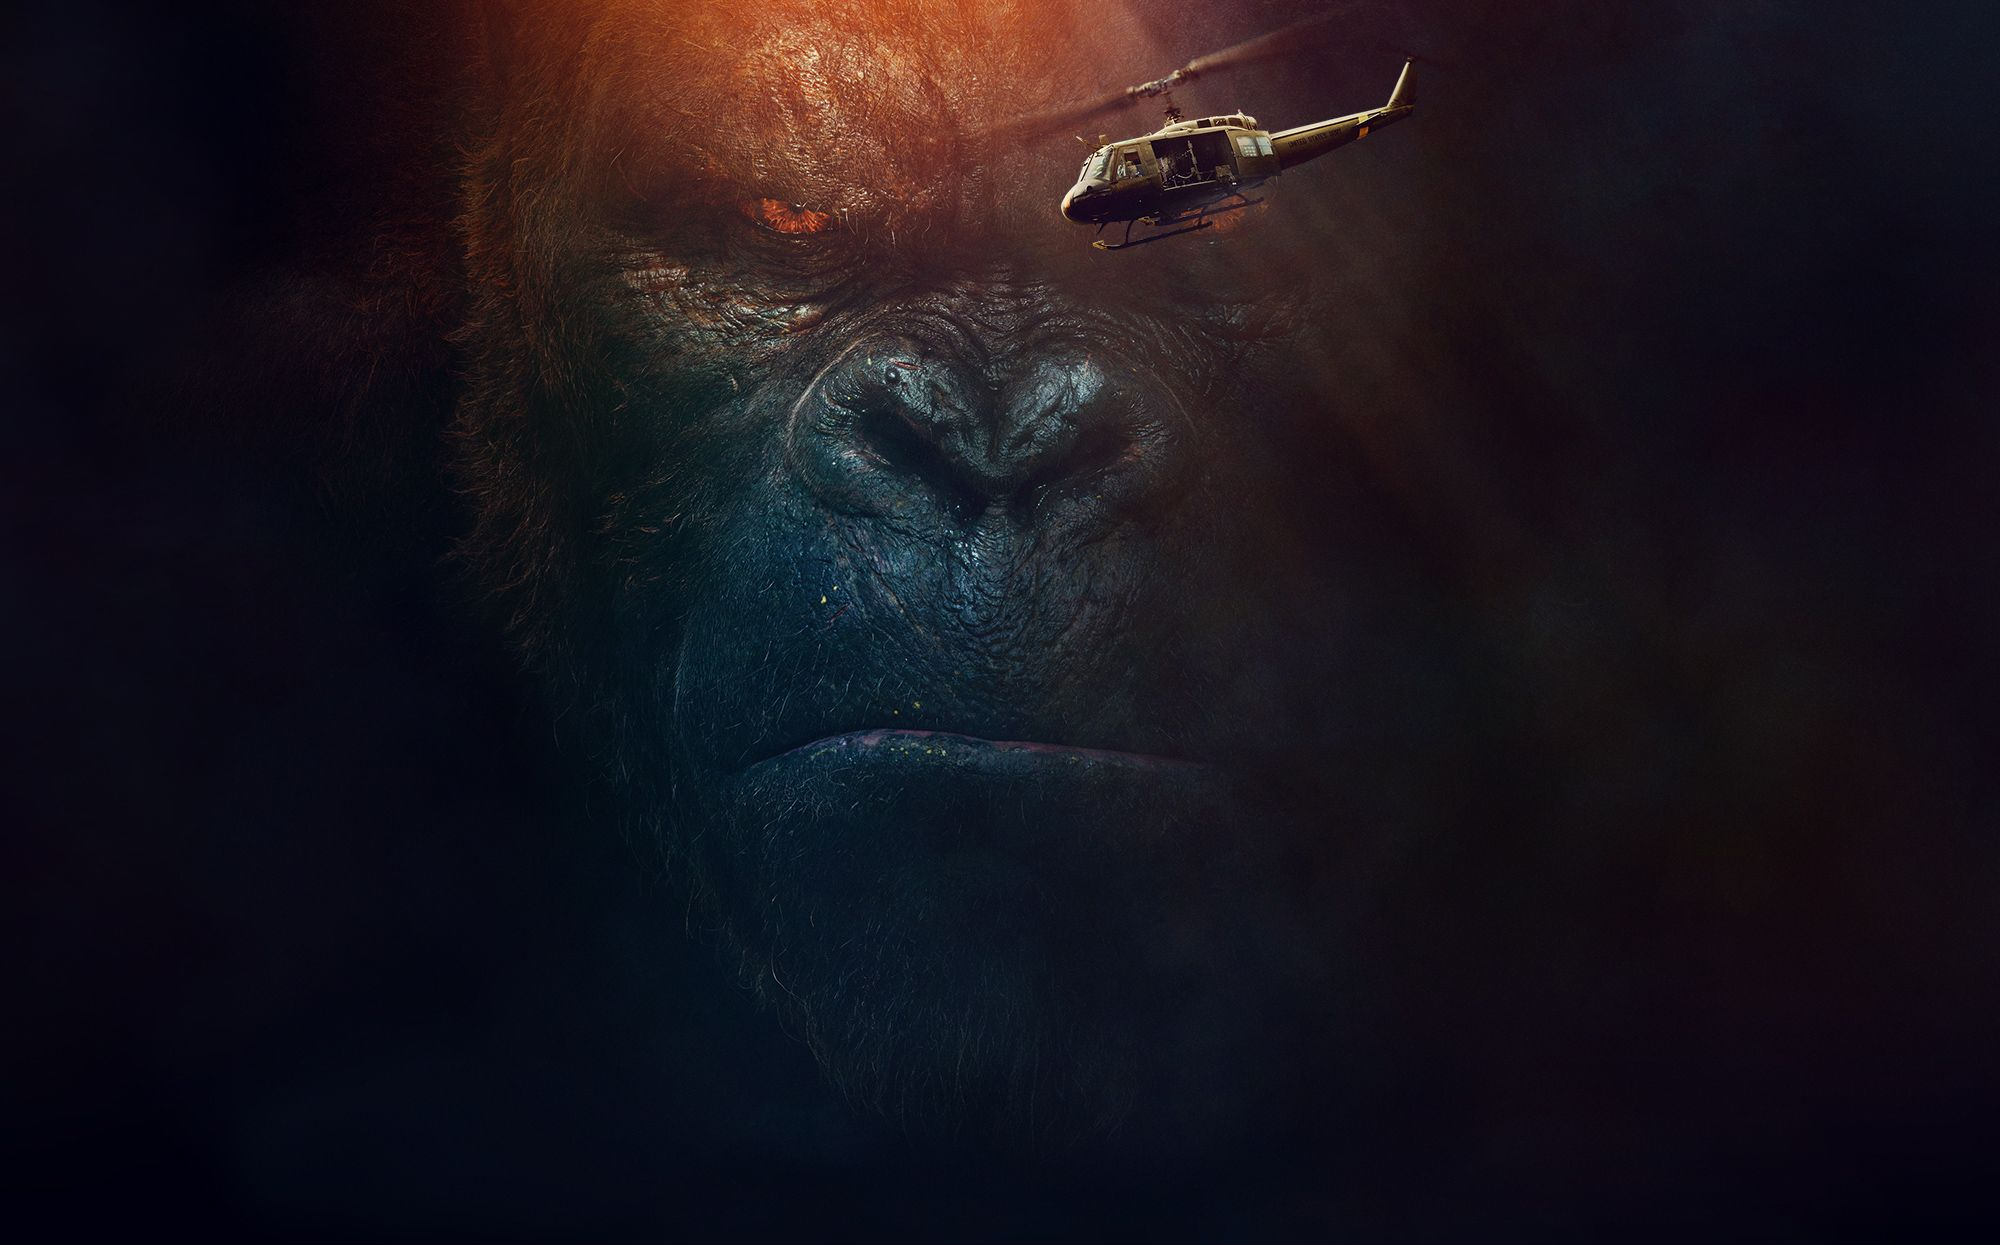 hd gorilla wallpapers, pics of apes